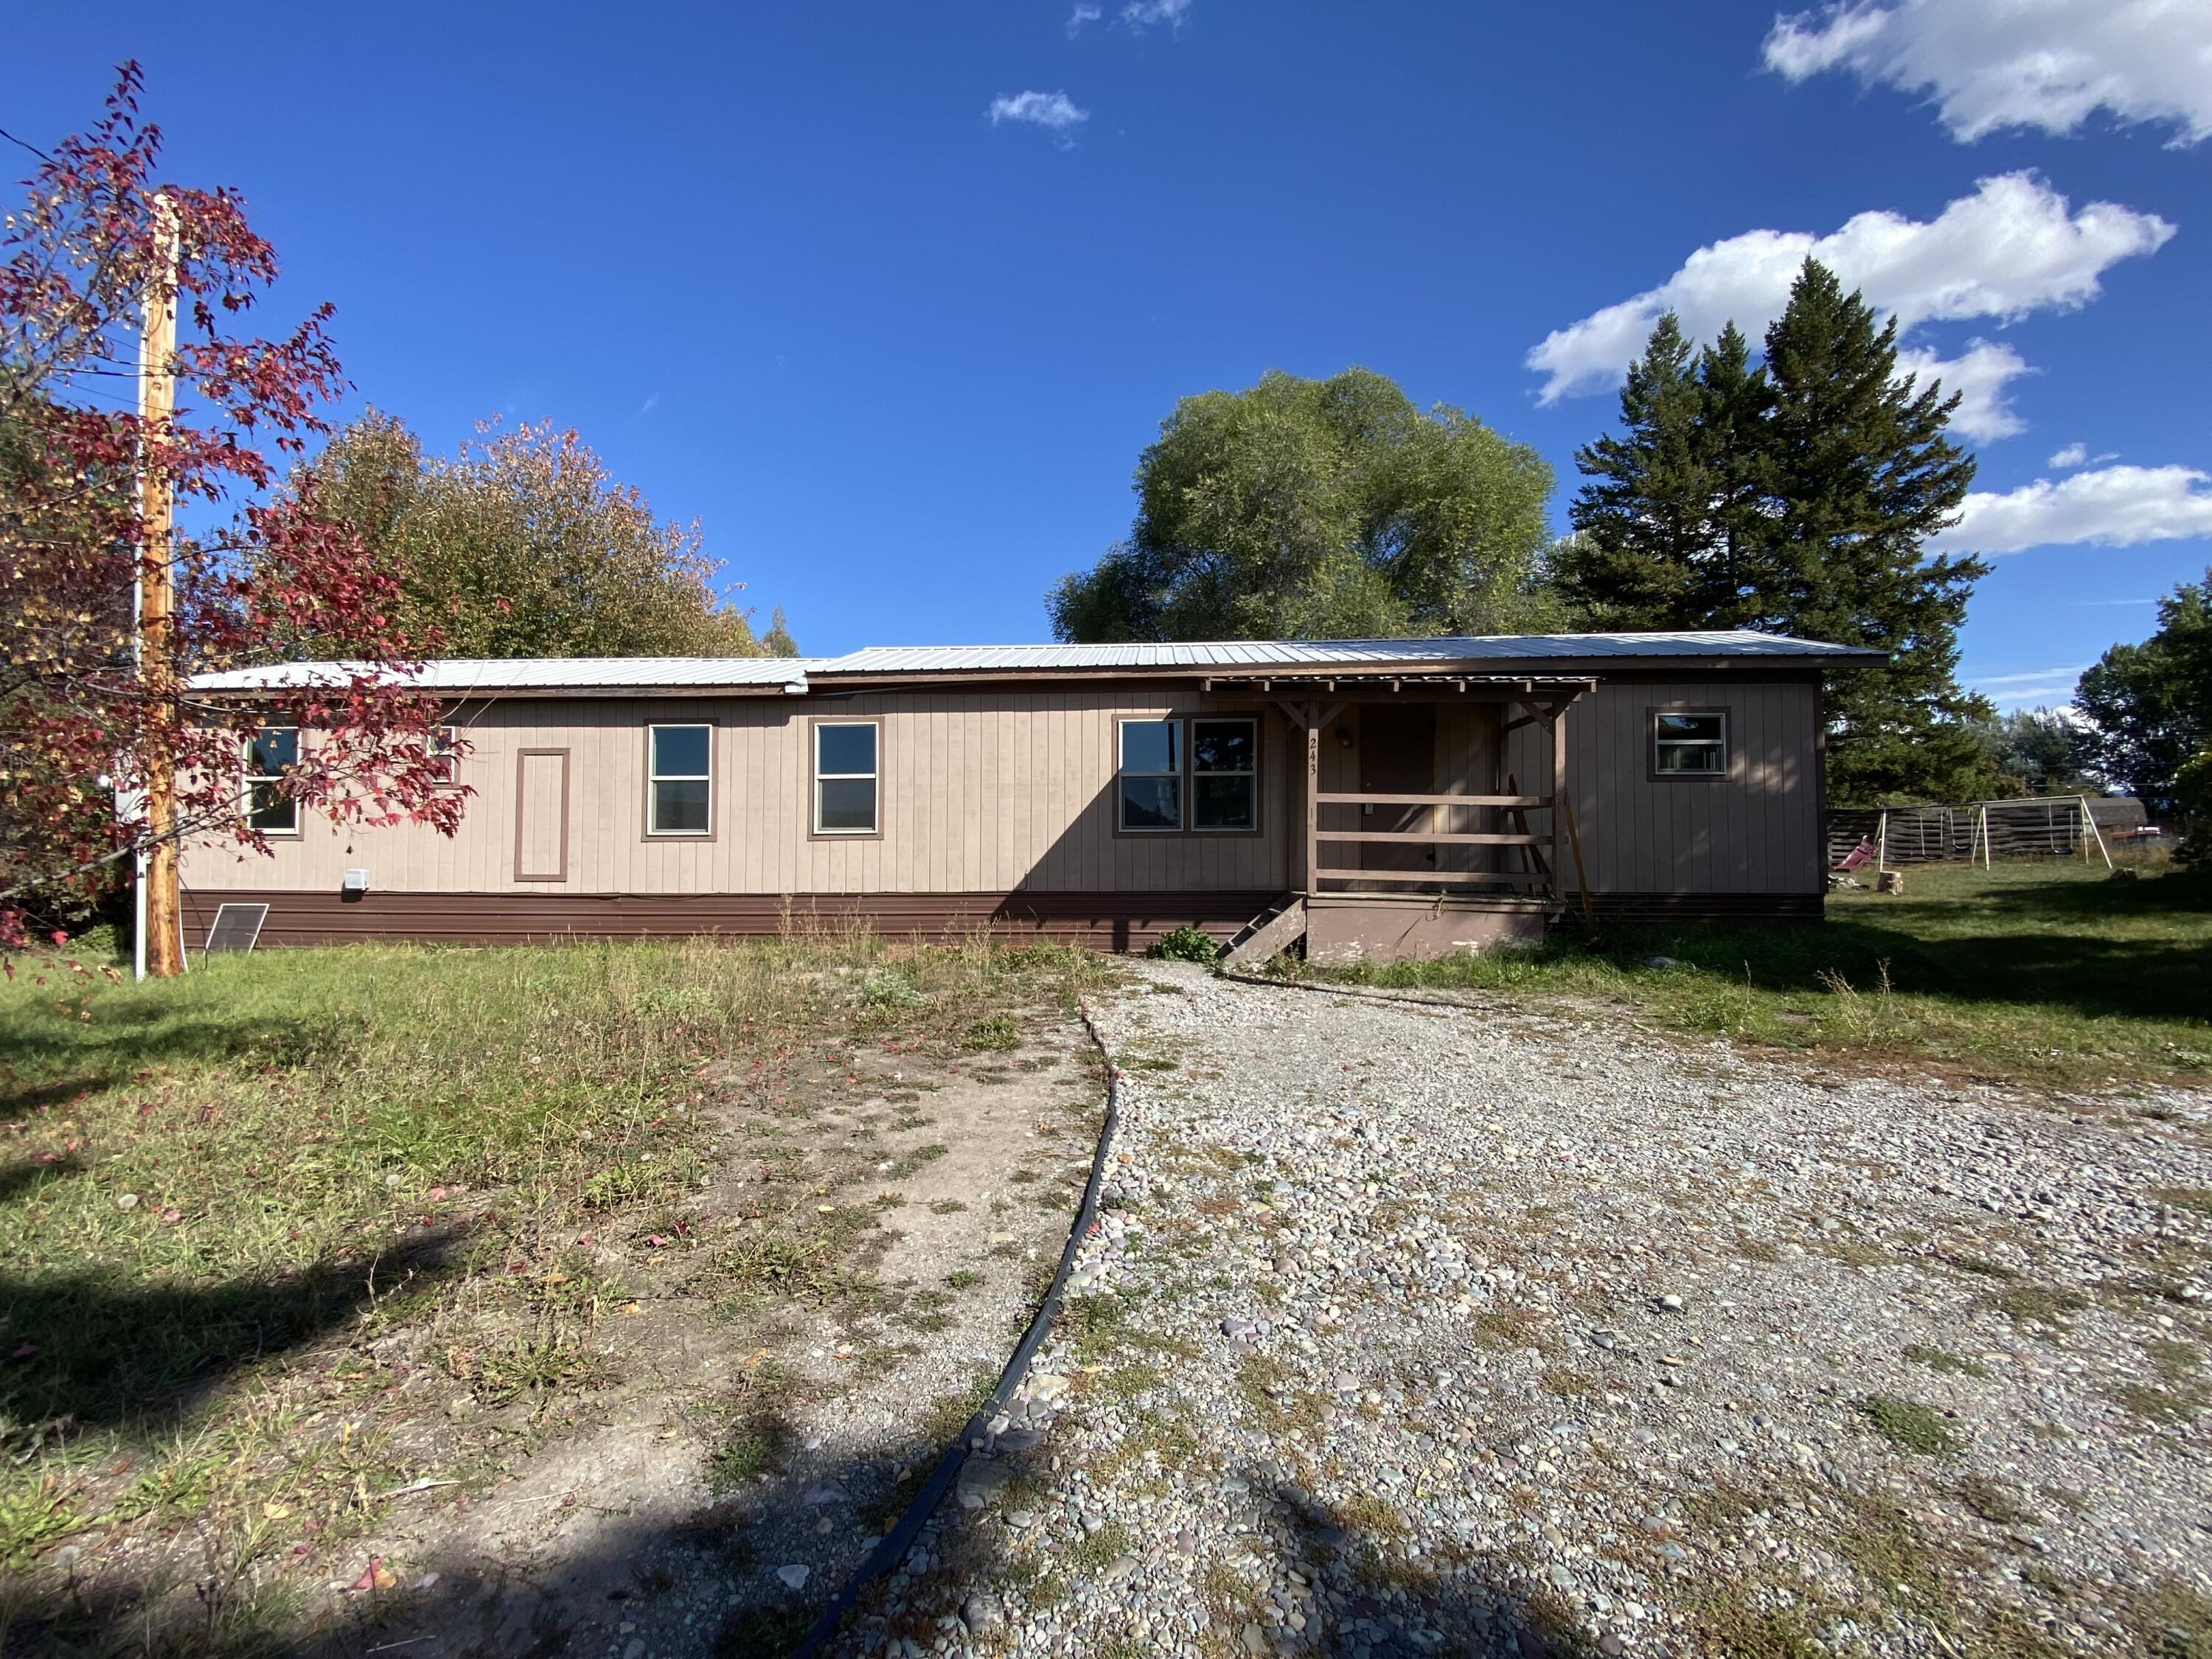 3 bedroom 1 bath single wide home on a great lot.  This home has had some updates and has a lot of potential, home being sold ''AS IS'.  Trees surrounding the lot for privacy and large yard for room to play. Contact Amy Kelly 406-261-5215 or your real estate professional to schedule a showing.